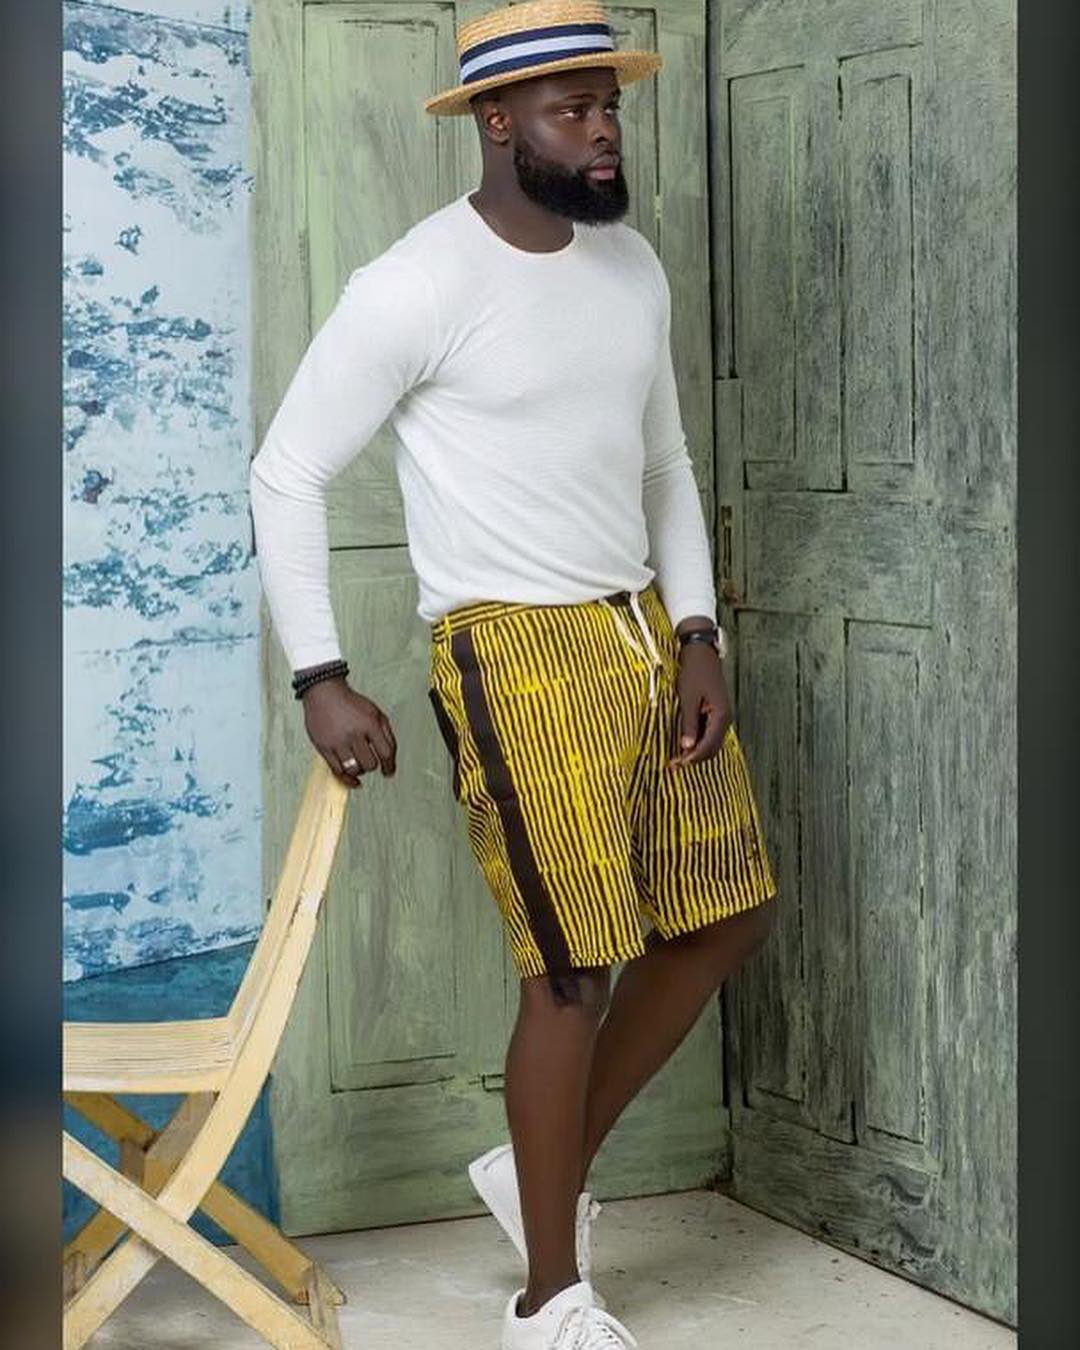 yomi casual in one of his designs